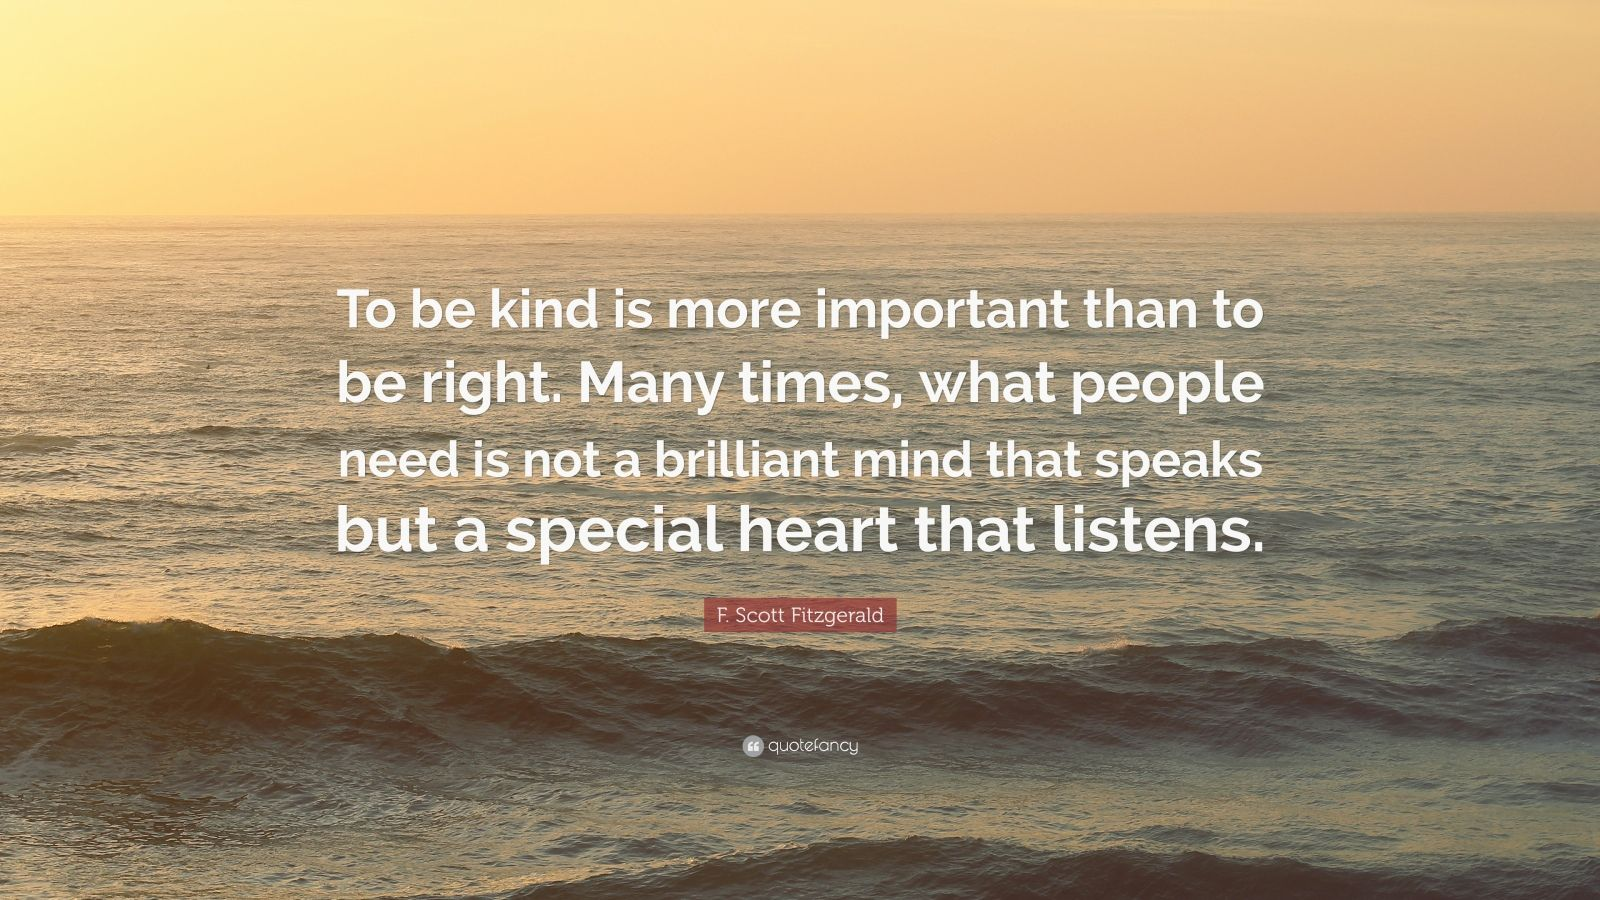 """F. Scott Fitzgerald Quote: """"To be kind is more important than to be right. Many times, what people need is not a brilliant mind that speaks but a special heart that listens."""""""